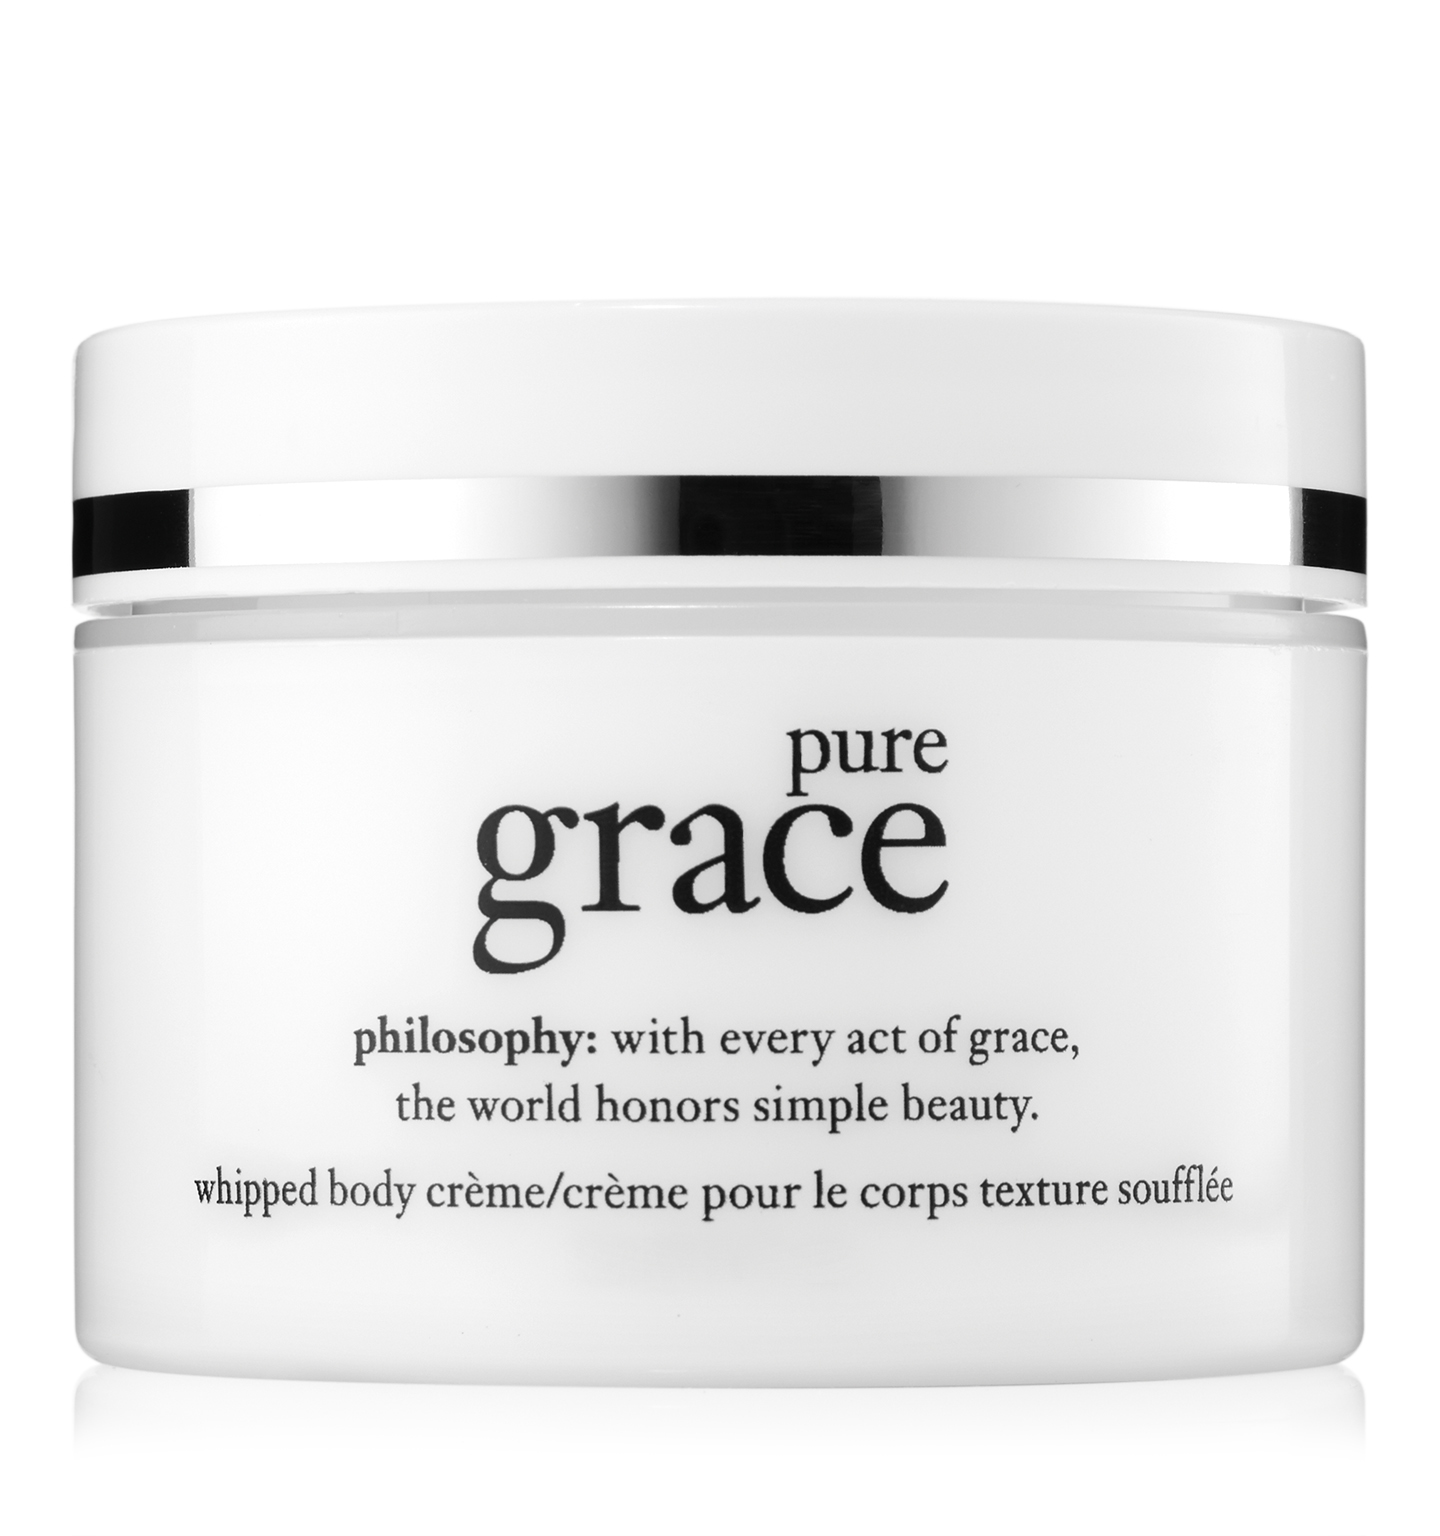 philosophy, pure grace 1 oz whipped body creme